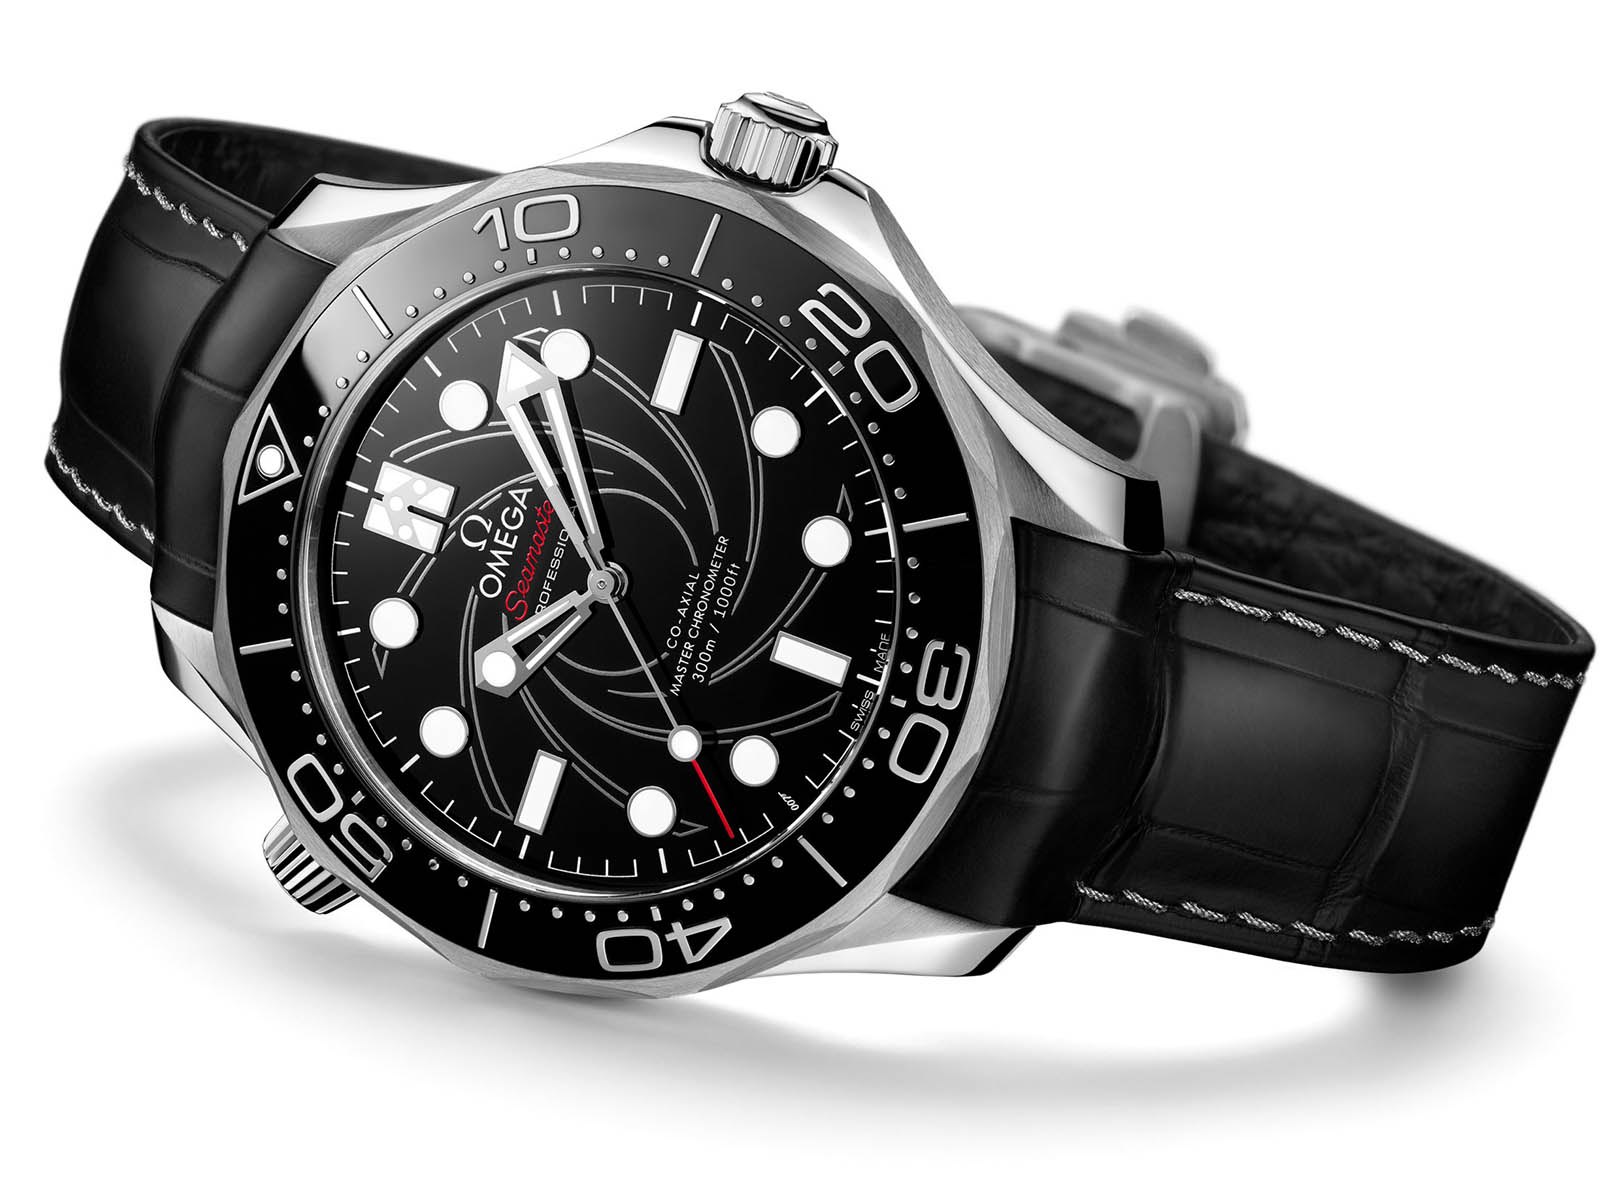 210-93-42-20-01-001-omega-seamaster-diver-300m-james-bond-numbered-edition-6.jpg